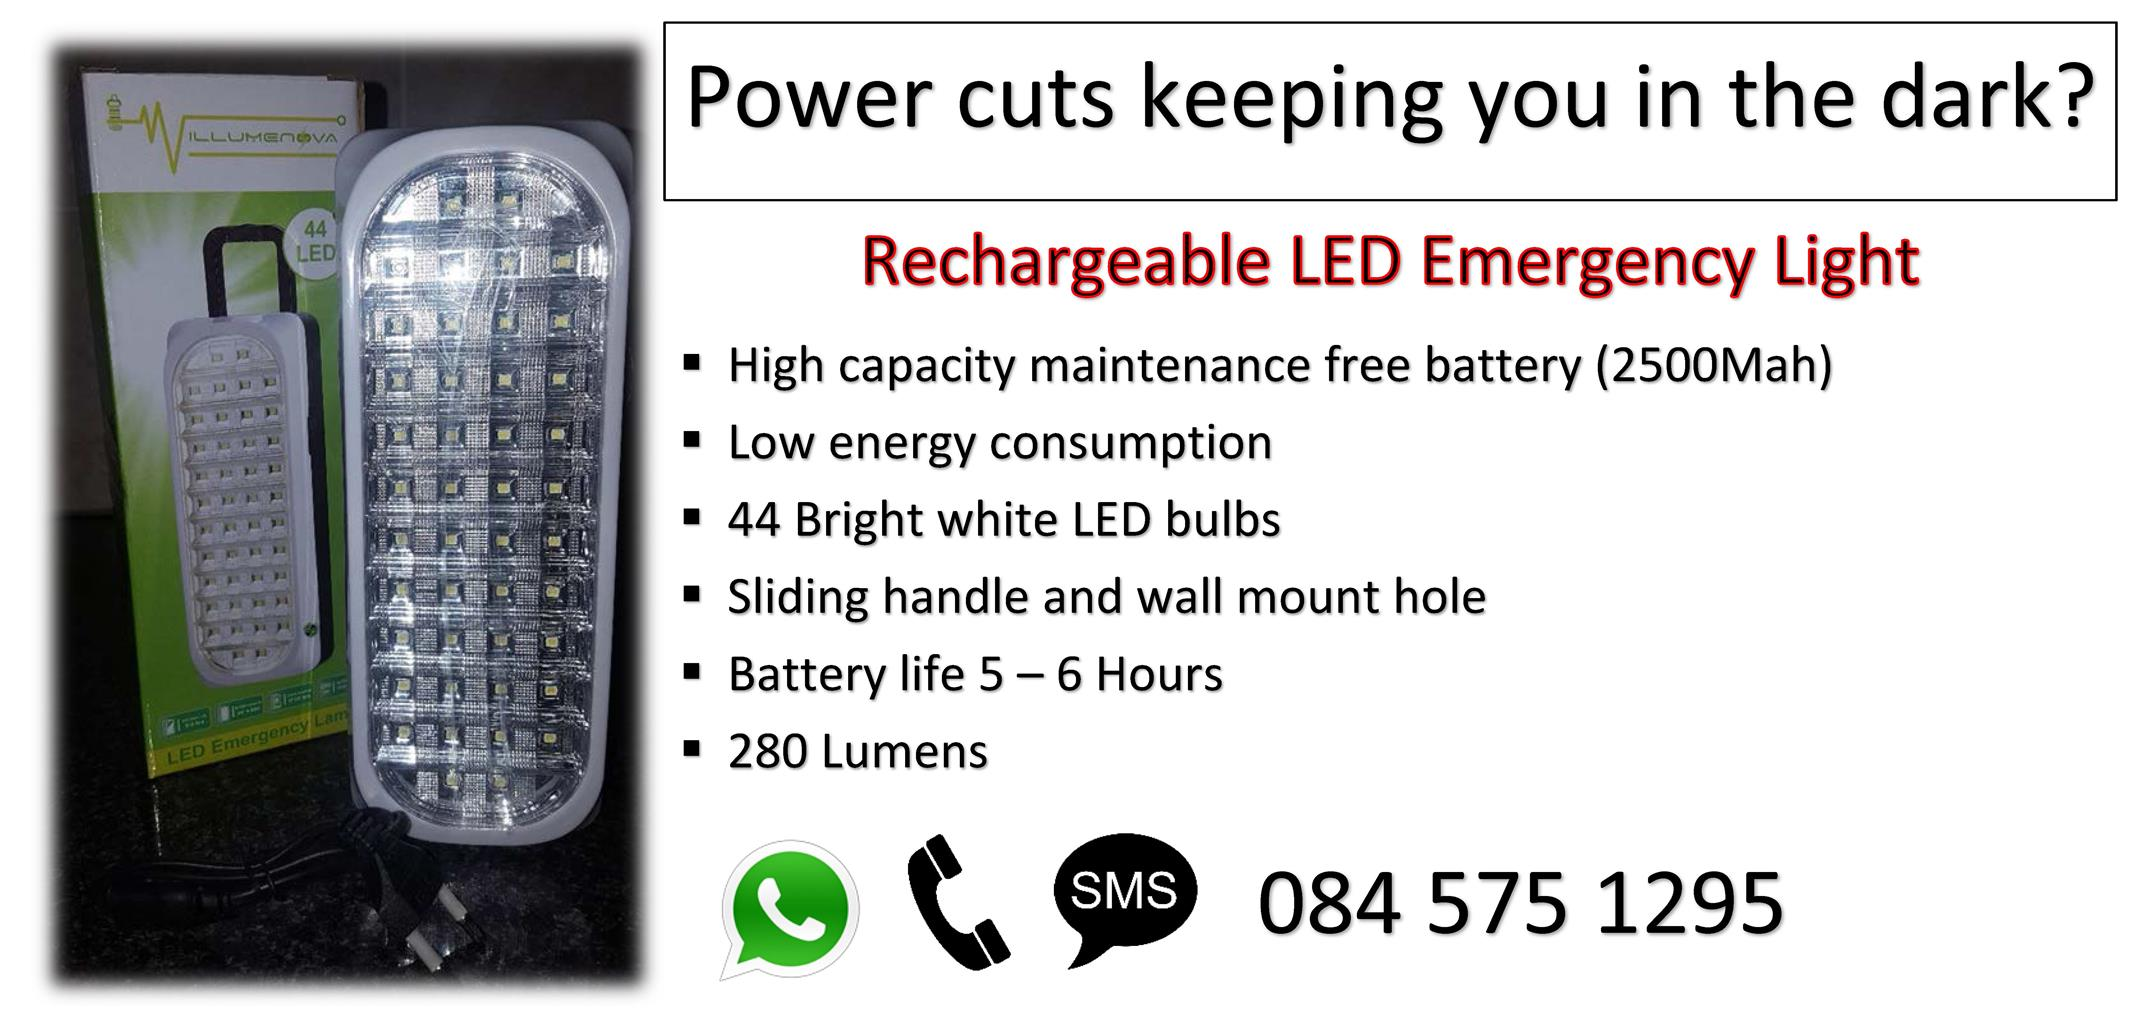 Rechargeable LED Emergency lights